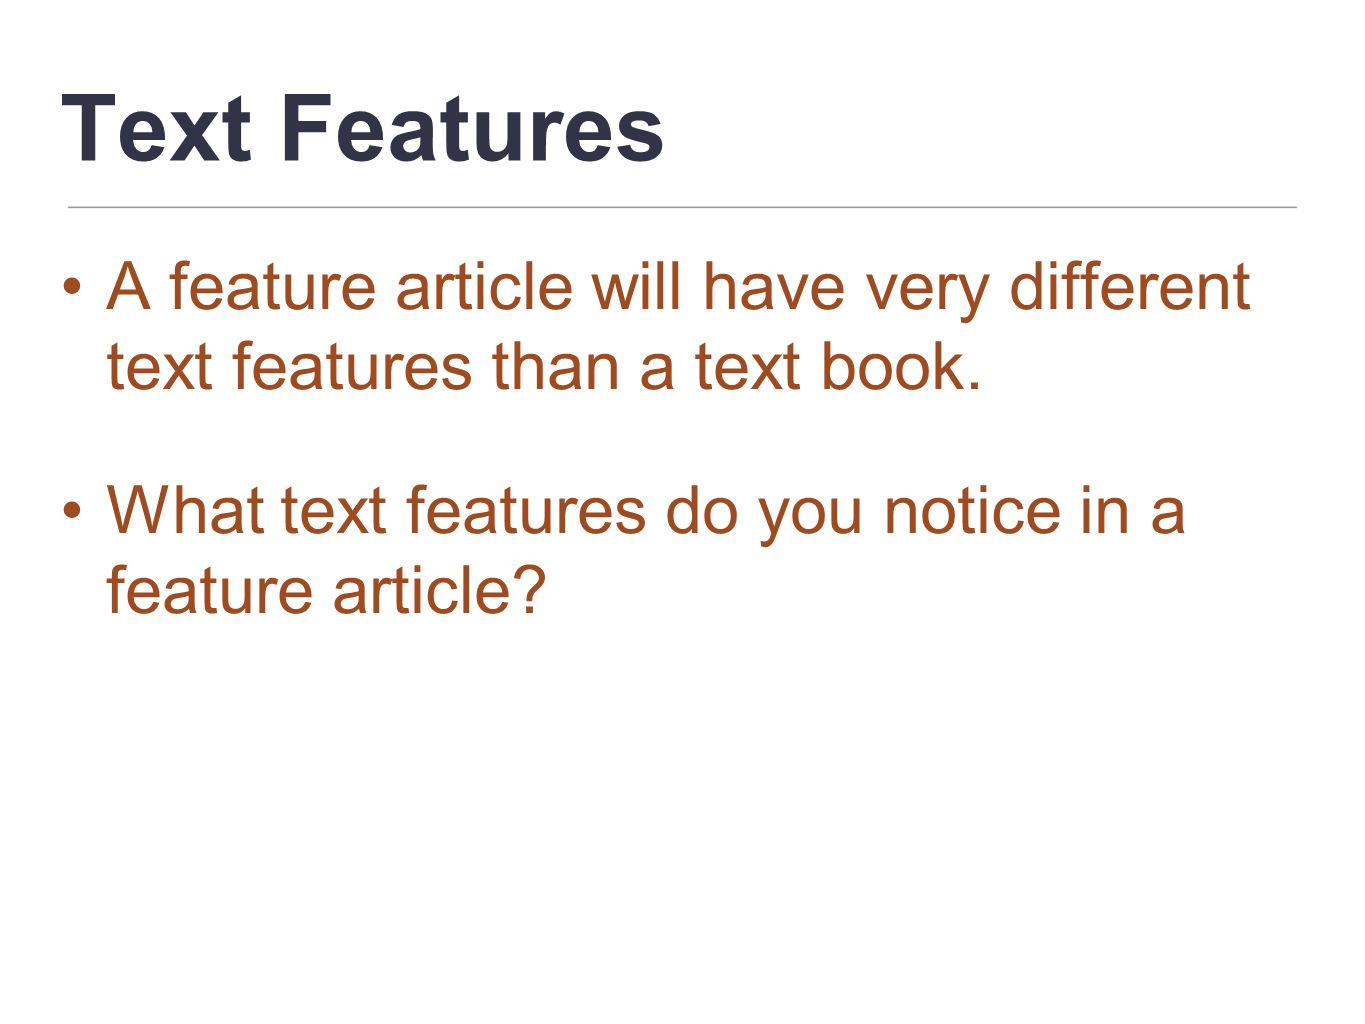 Text Features A feature article will have very different text features than a text book.